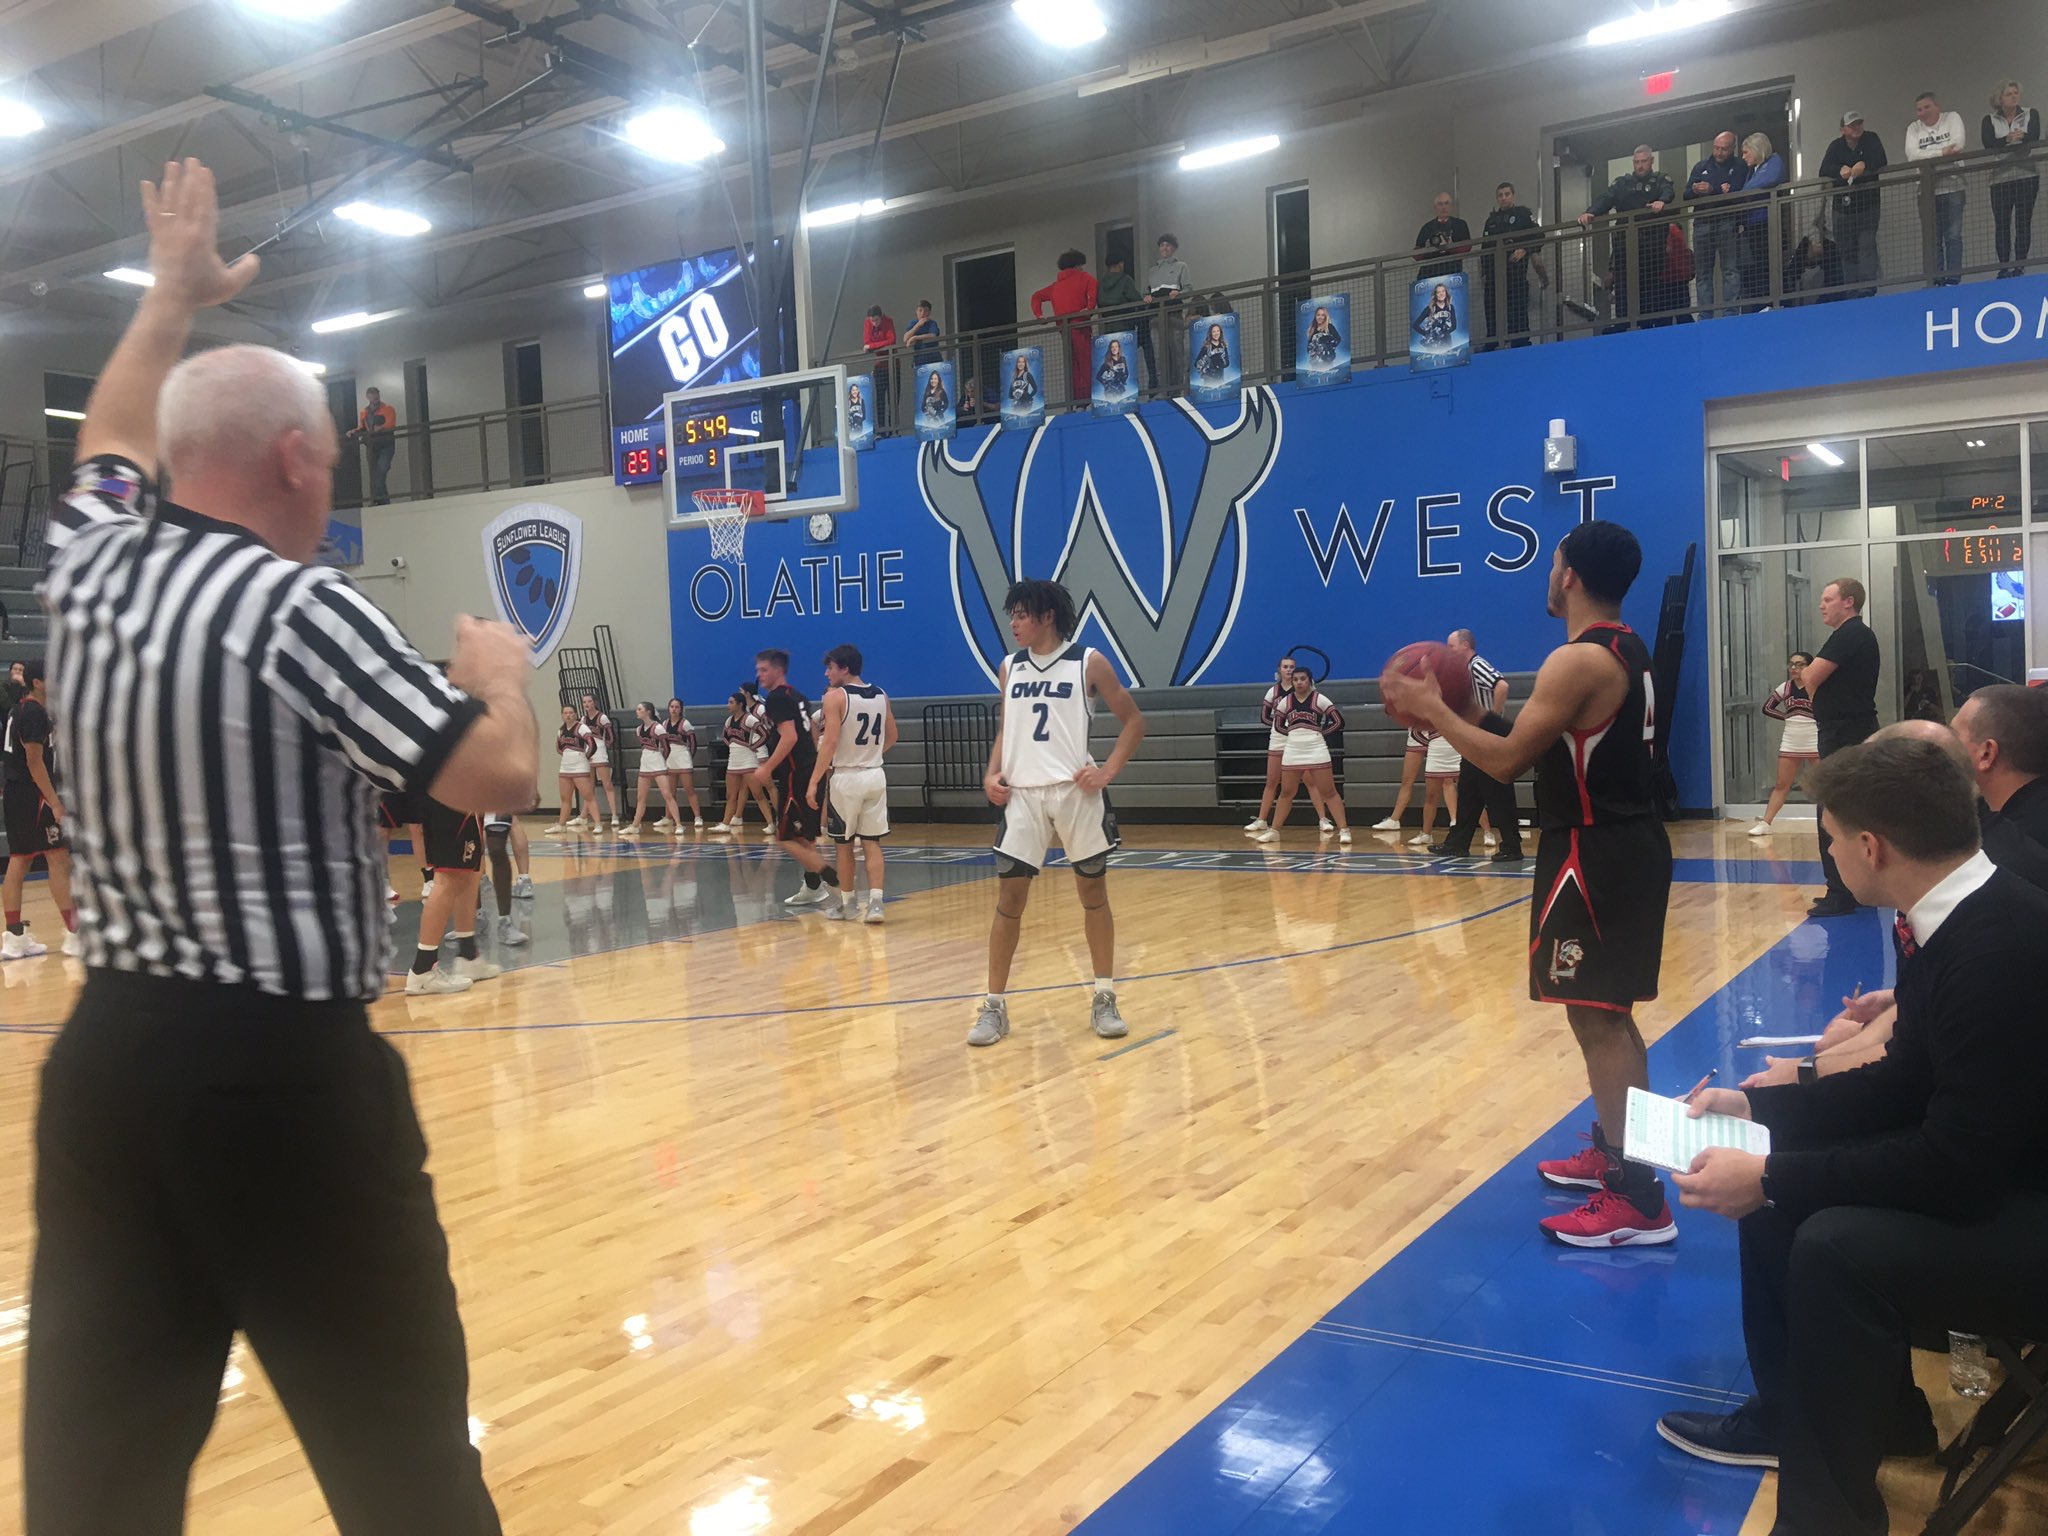 Olathe West's Onslaught Downs Liberal